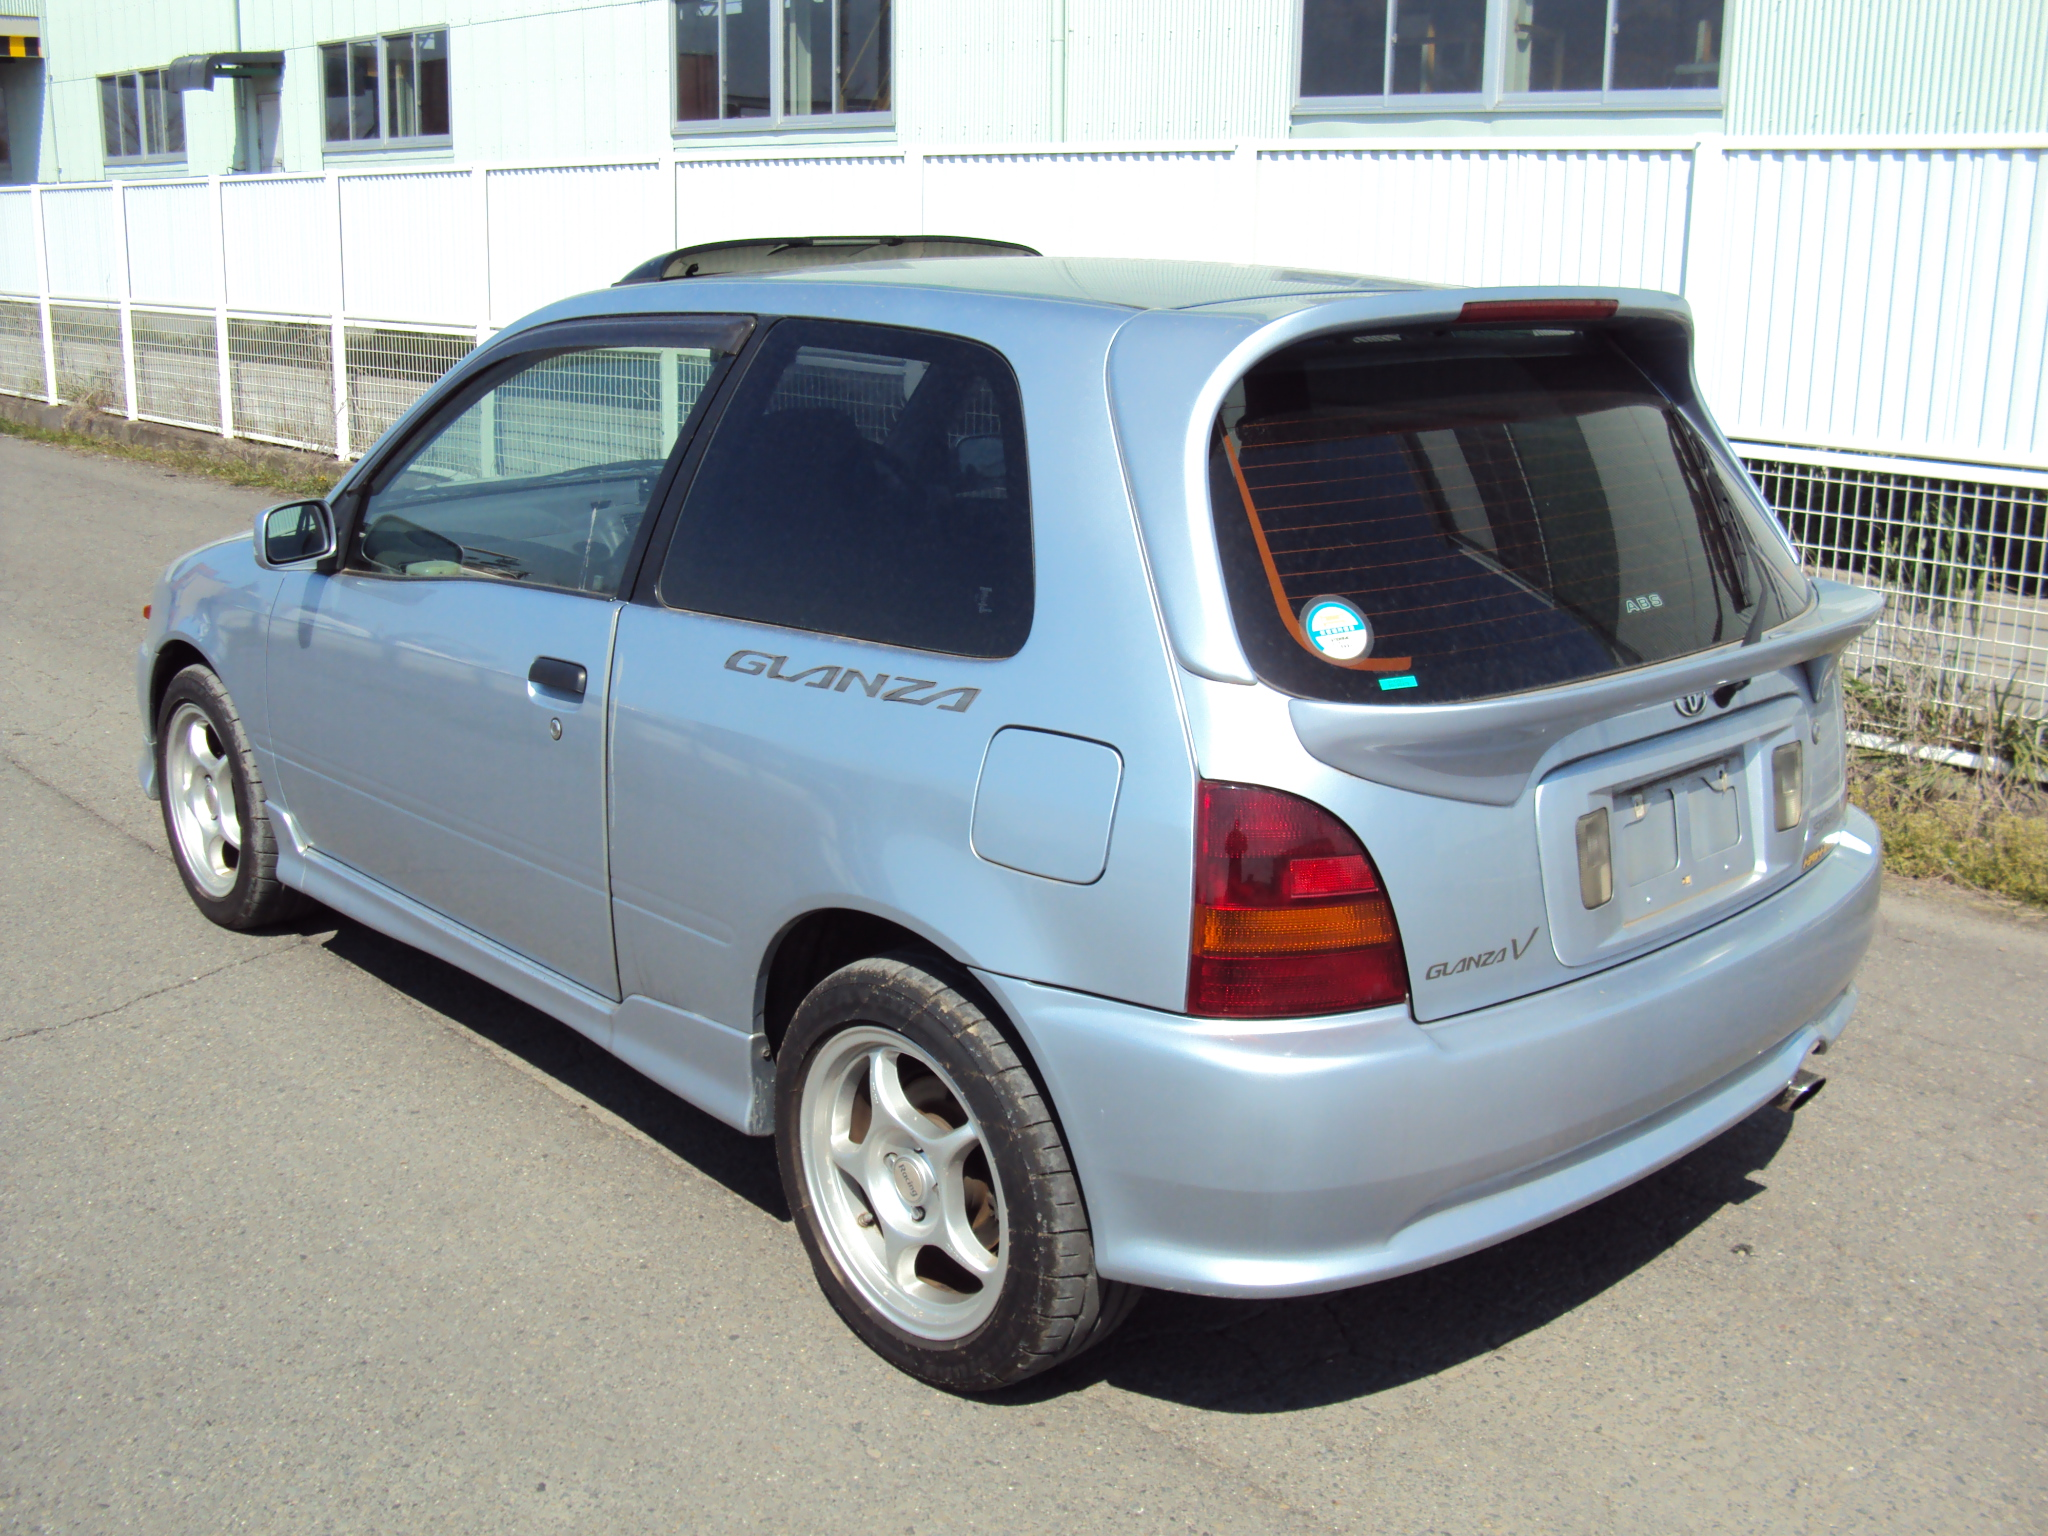 toyota starlet glanza v 1997 used for sale. Black Bedroom Furniture Sets. Home Design Ideas